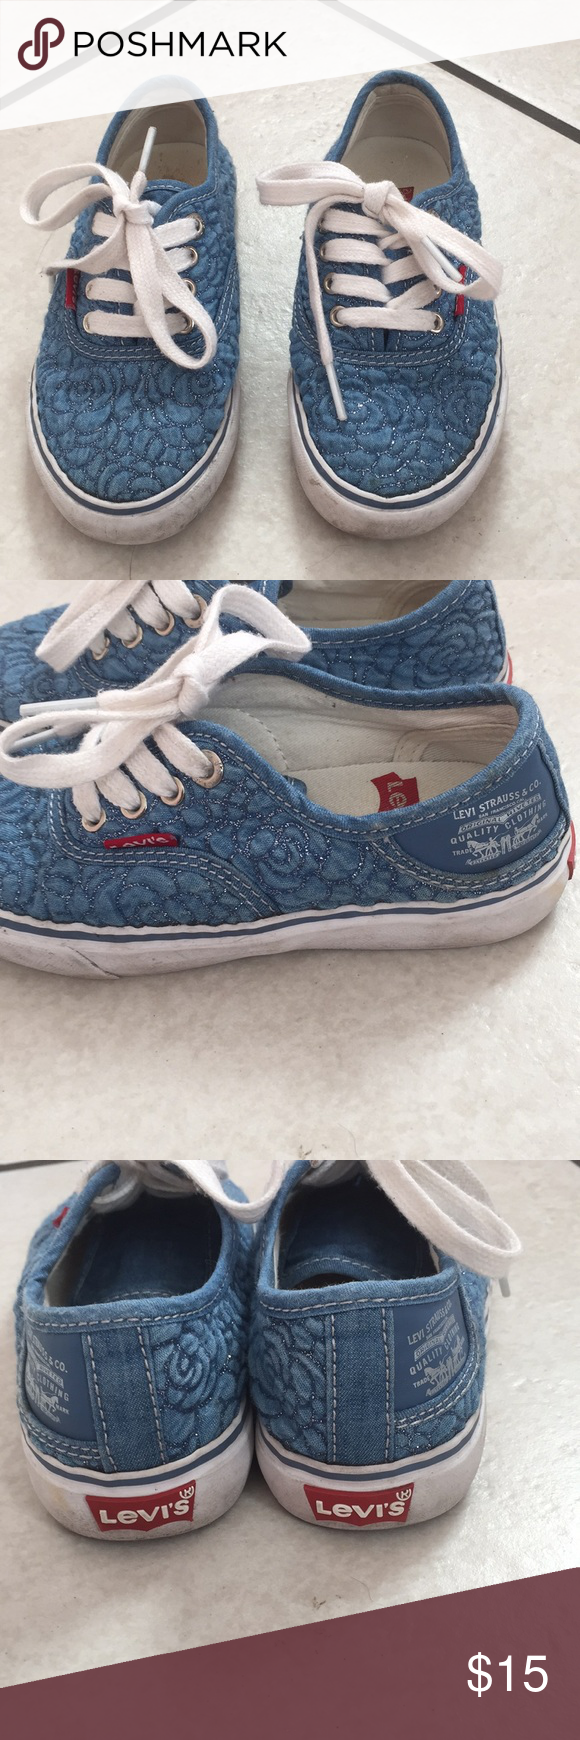 3dcaeec59b8 Levis sneakers(girls) Used in very good conditions Levi s Shoes Sneakers